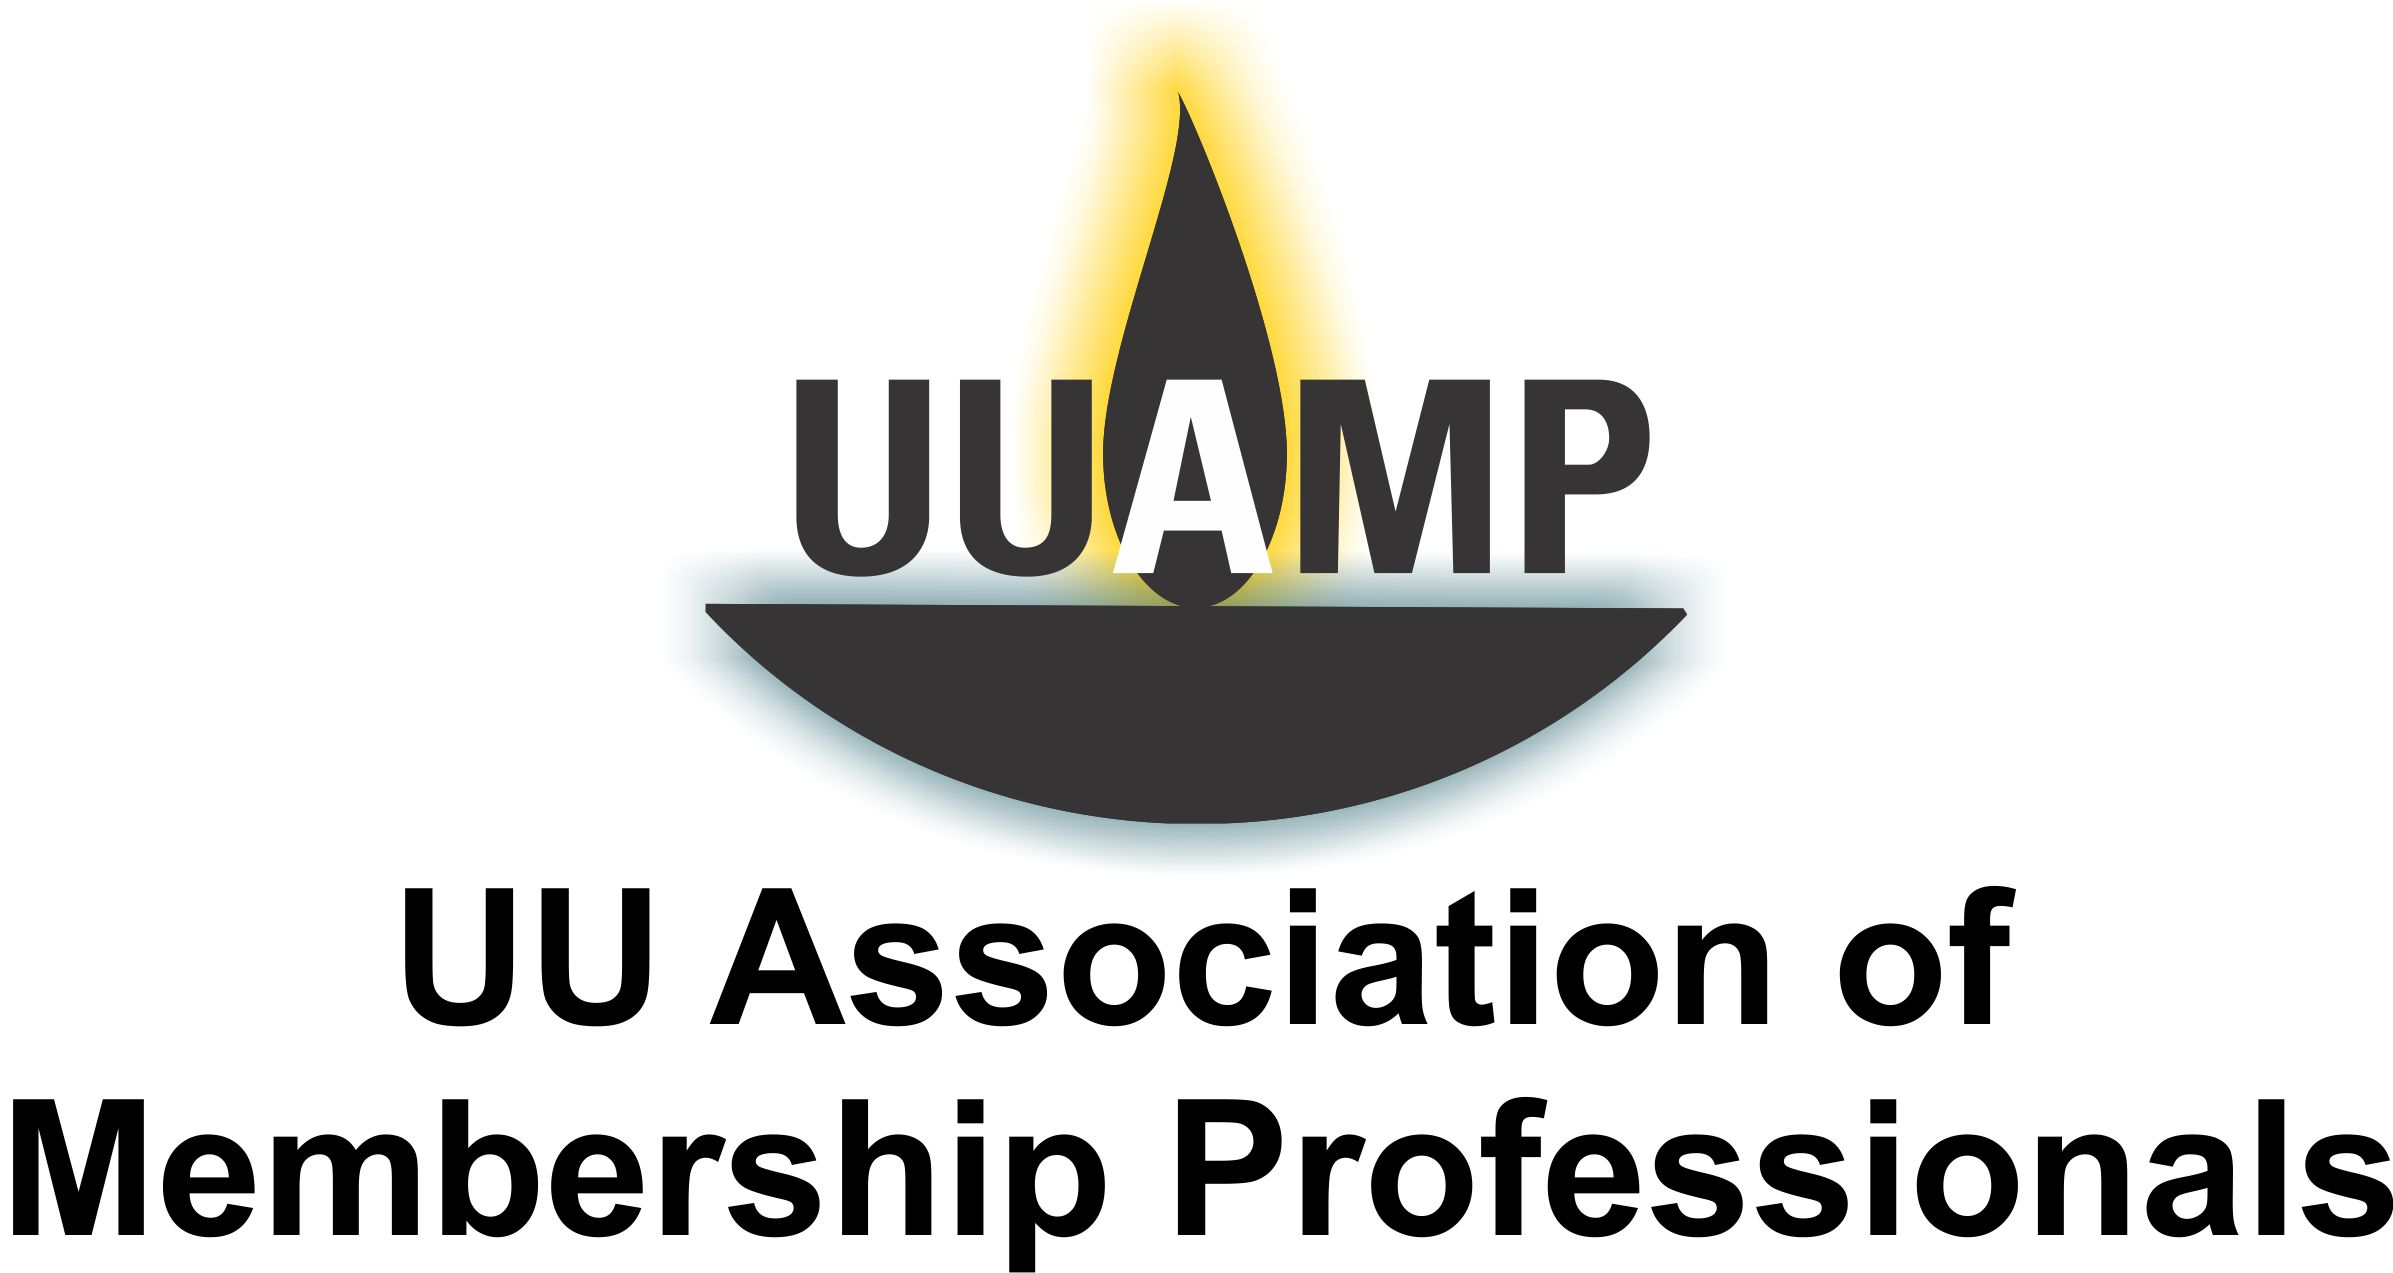 uuamp-logo-stacked